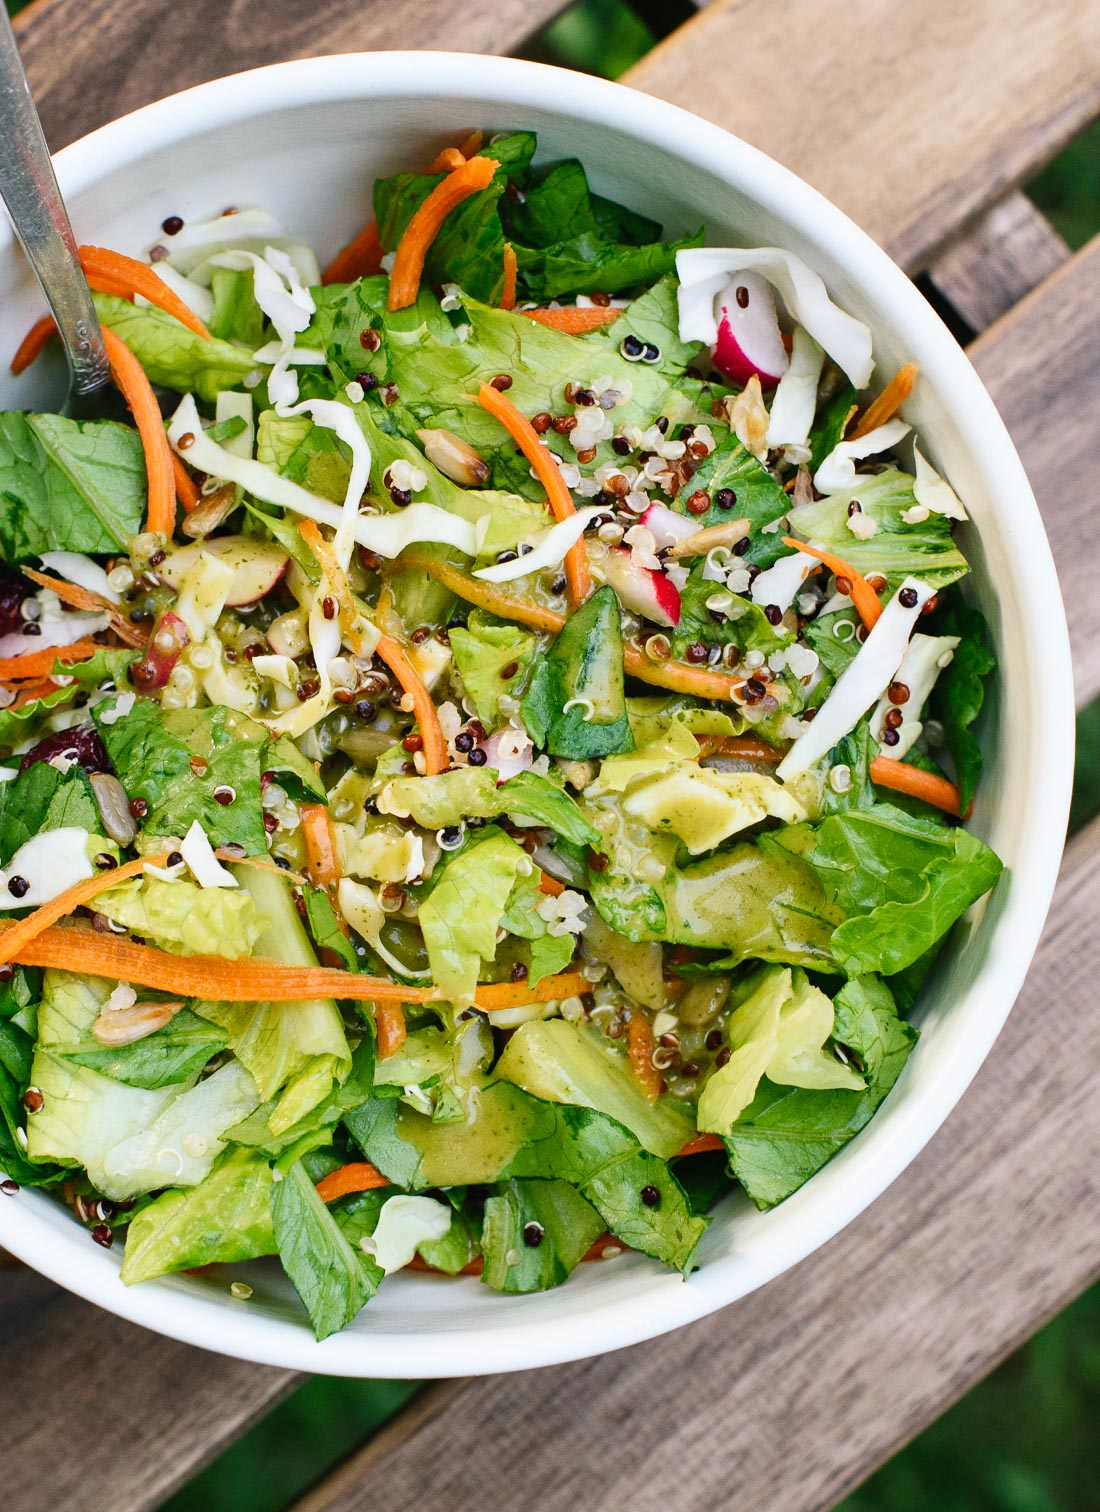 This mega crunchy romaine salad is bursting with fresh and flavorful ingredients! cookieandkate.com